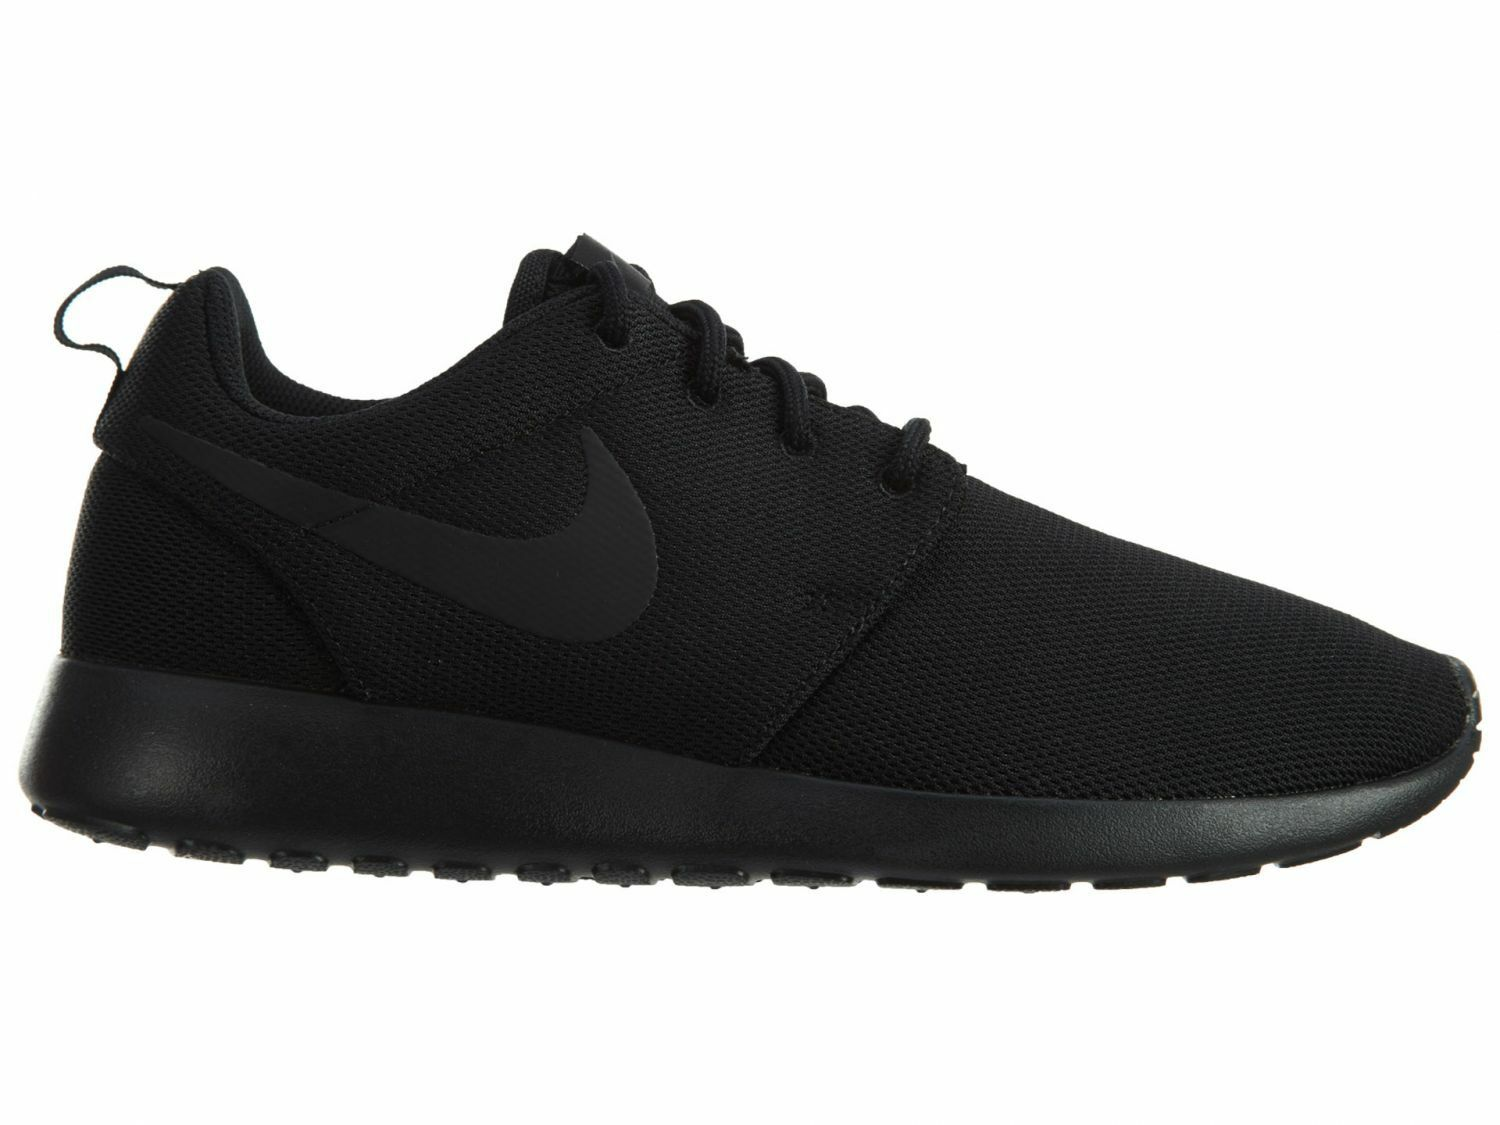 Nike Roshe One Womens 844994-001 Black Mesh Running Training shoes Wmns Size 7.5